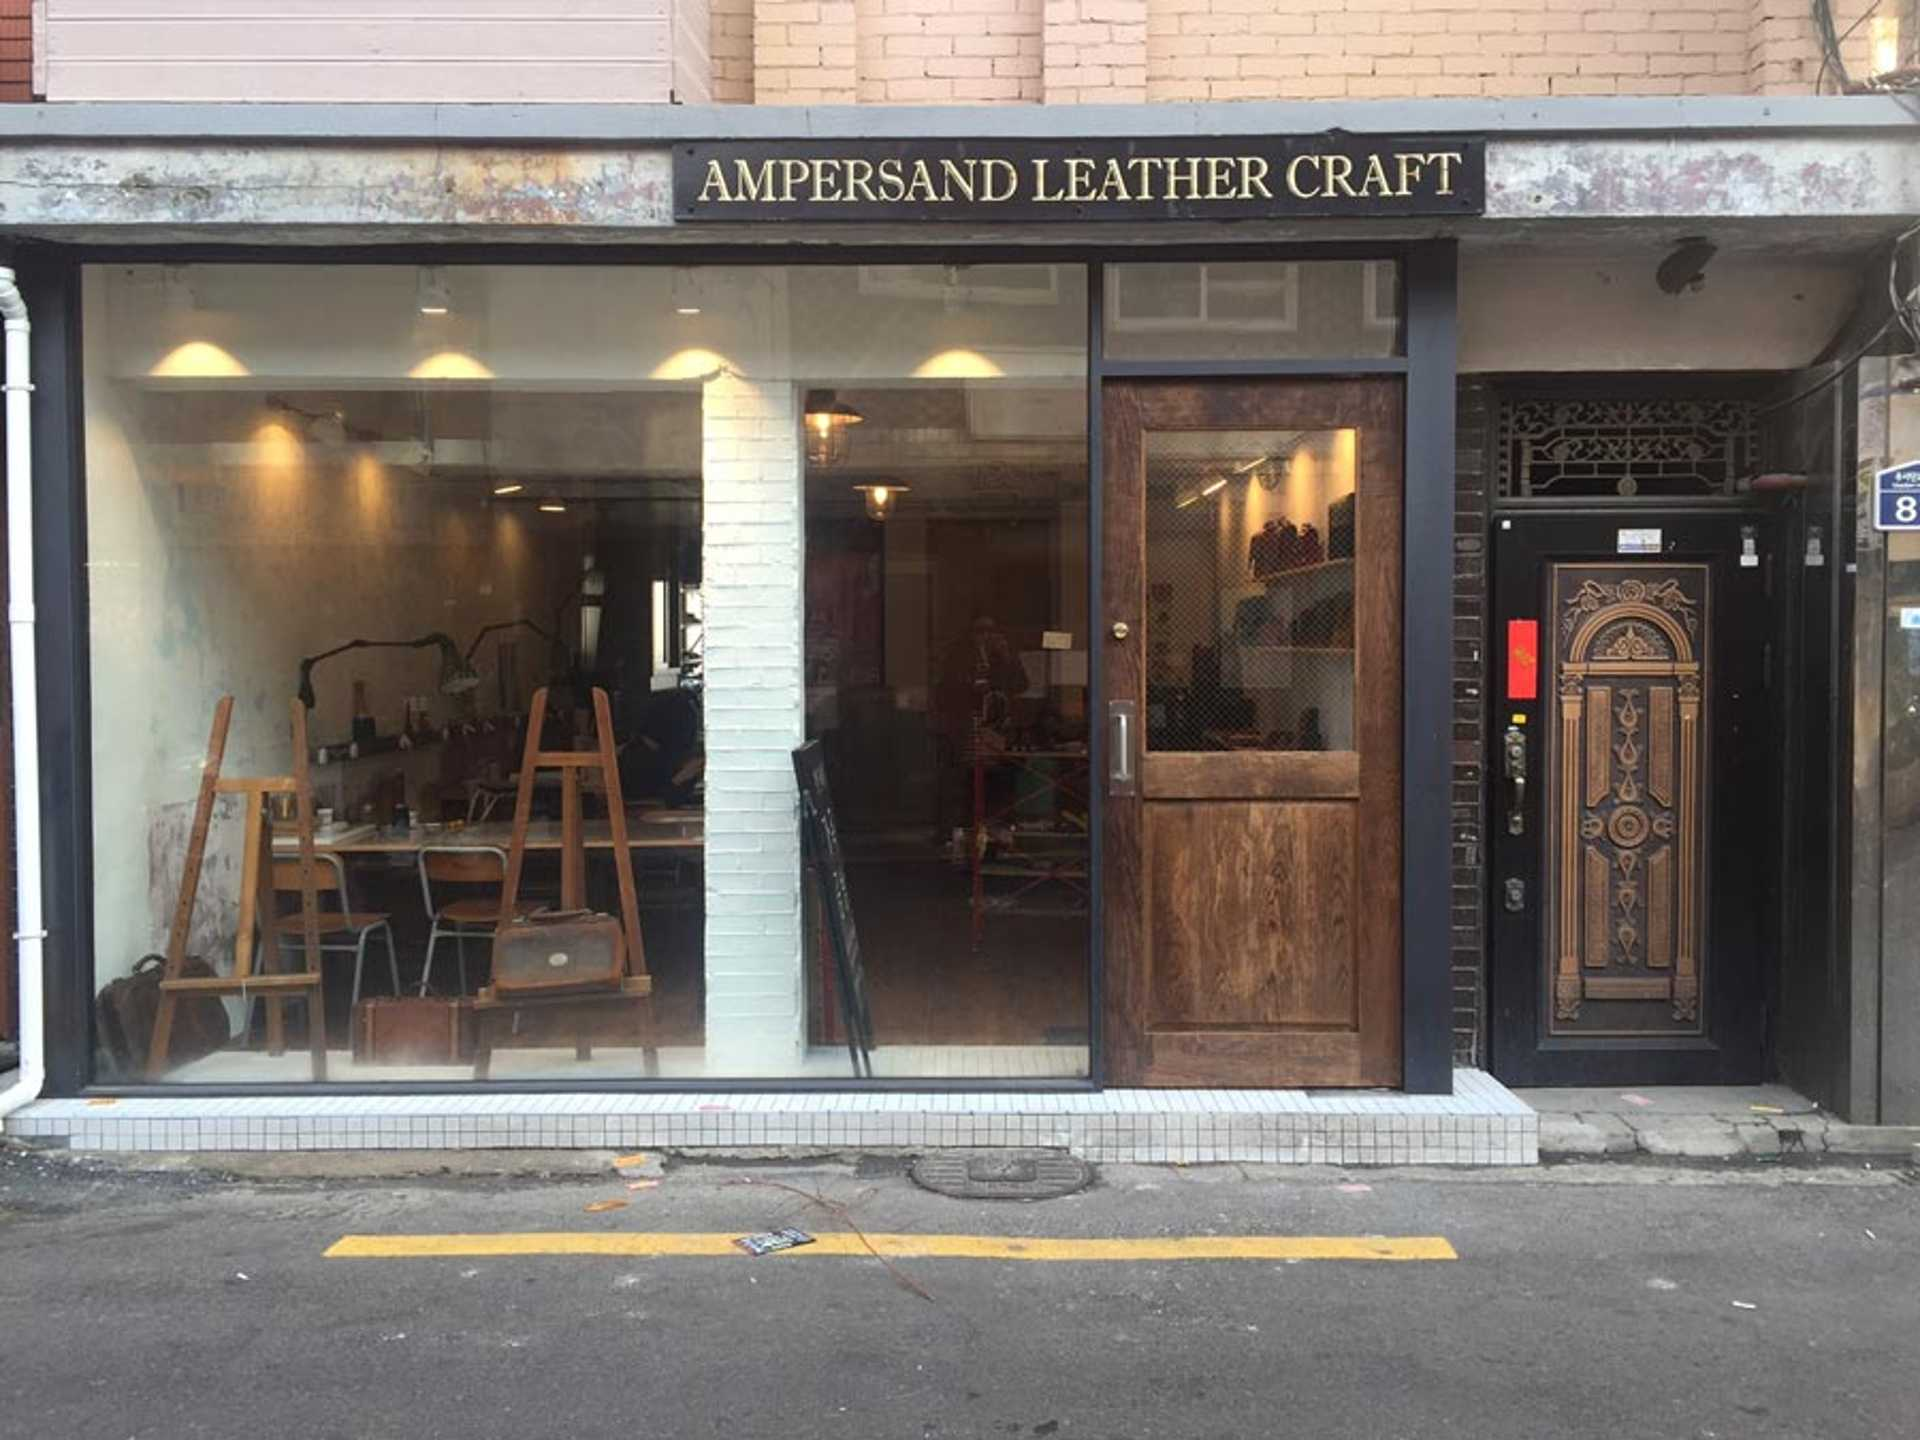 itaewon-leather-shop-eid-guesthouse